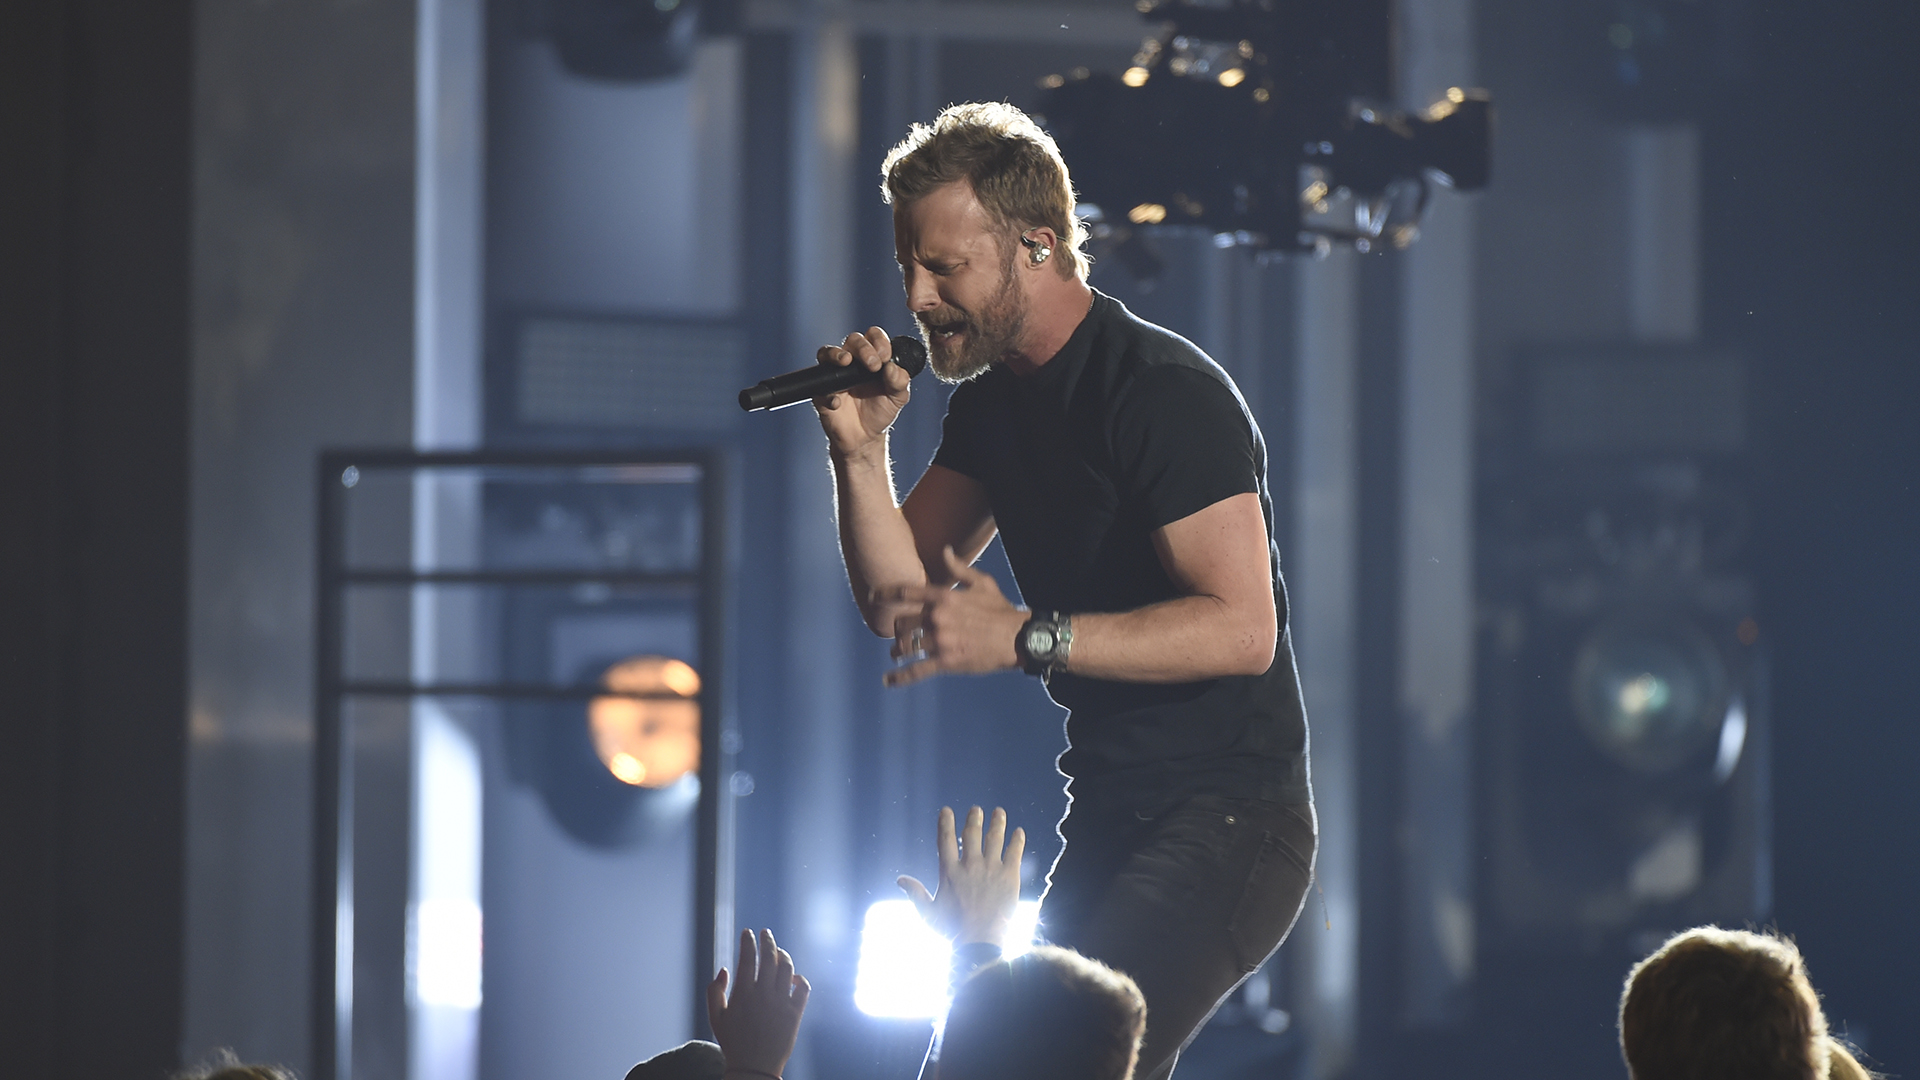 Dierks Bentley comes on stage for a rendition of